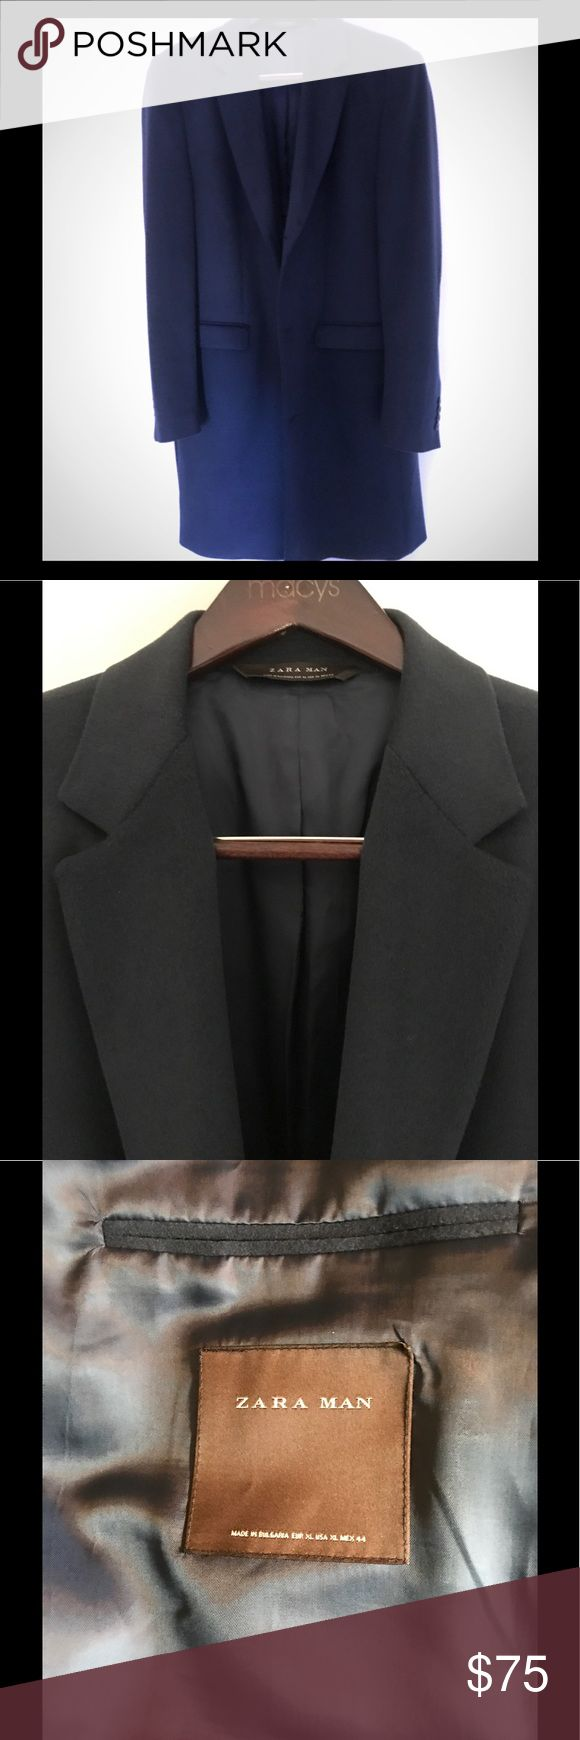 Zara Man long coat Brand New NEVER worn. I know it's summer but this is worth the investment. zara man Jackets & Coats Pea Coats